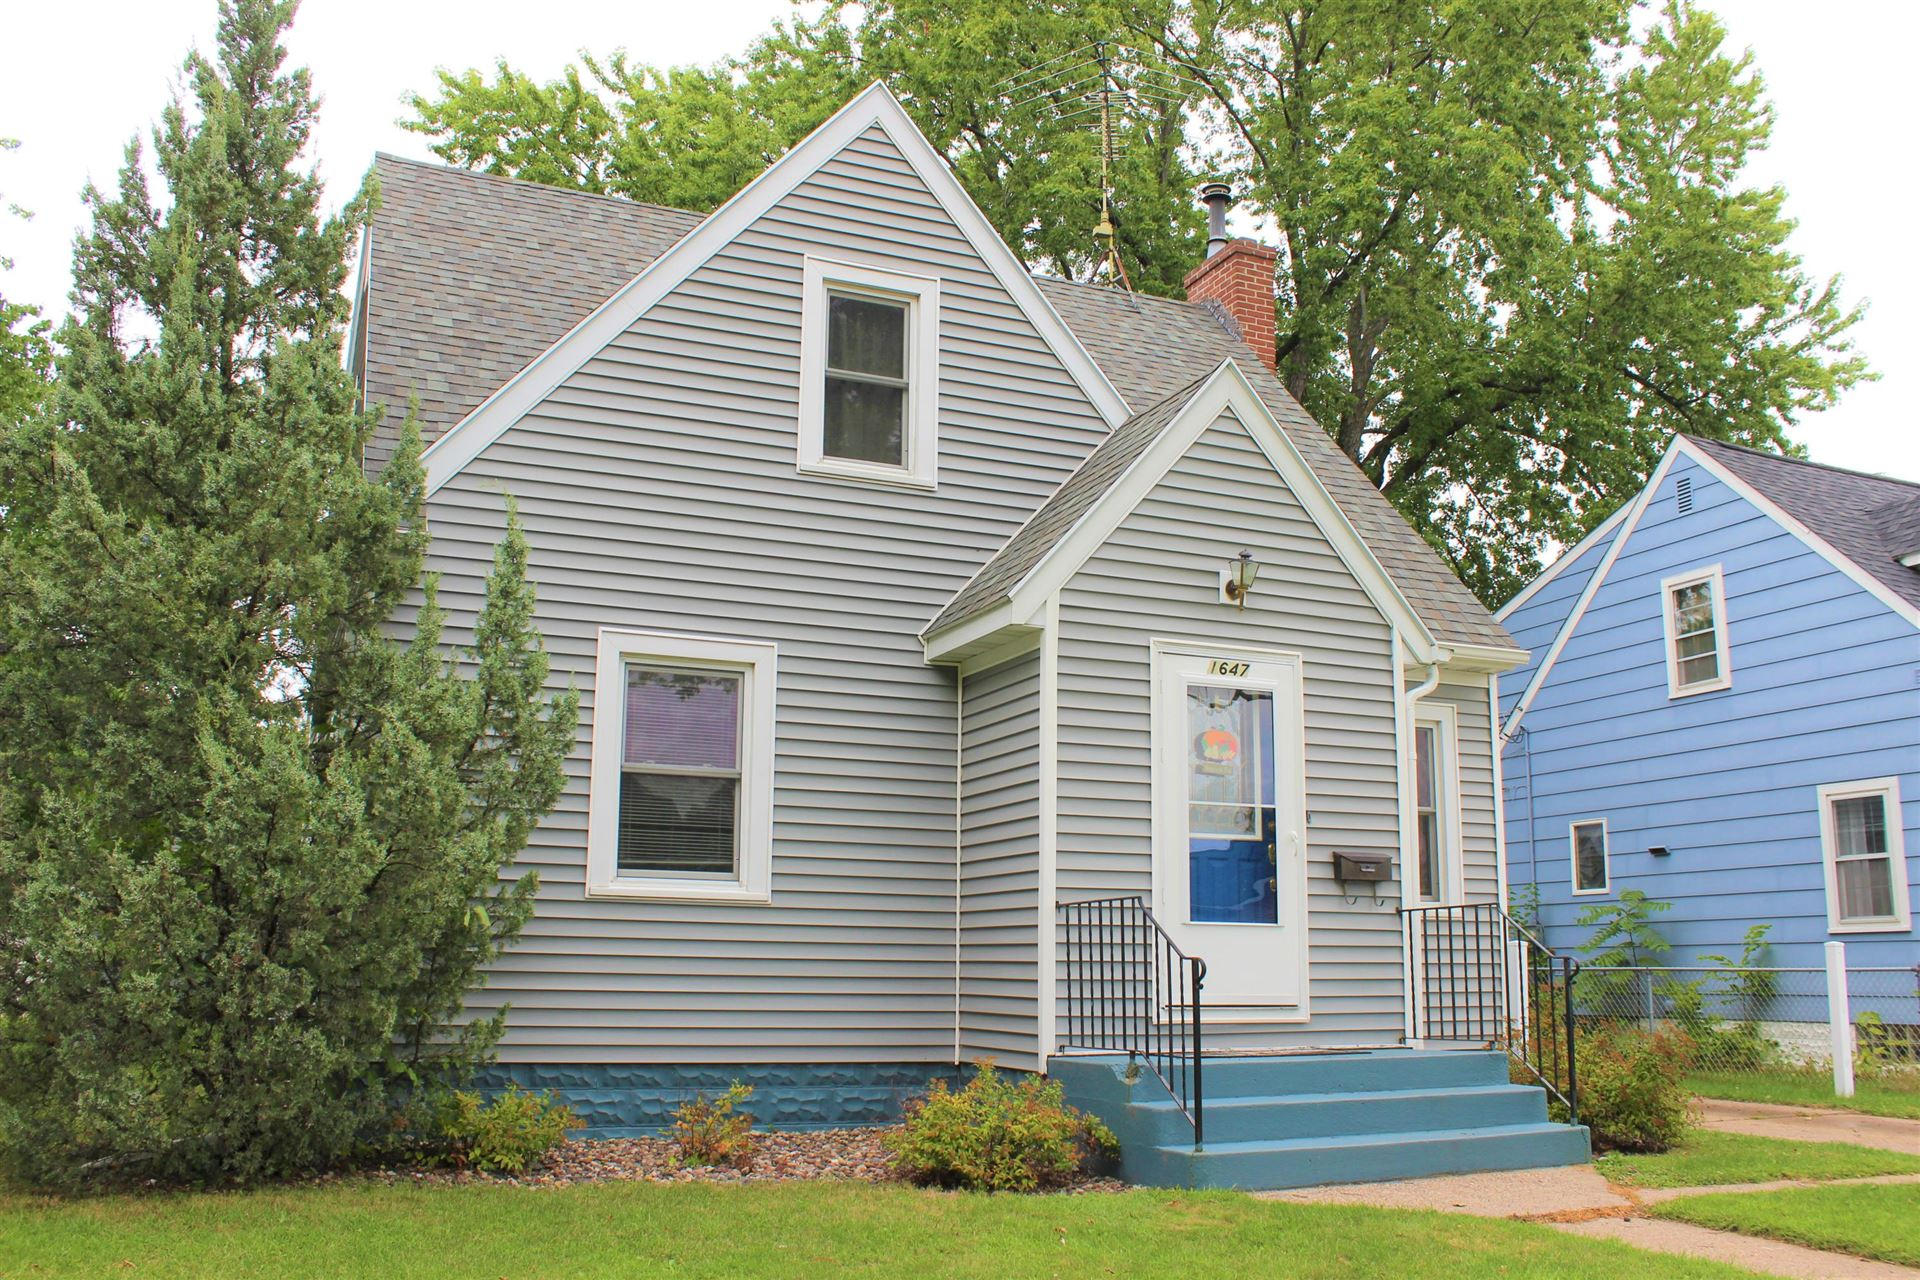 1647 Denton St, La Crosse, WI 54601 - MLS#: 1709598